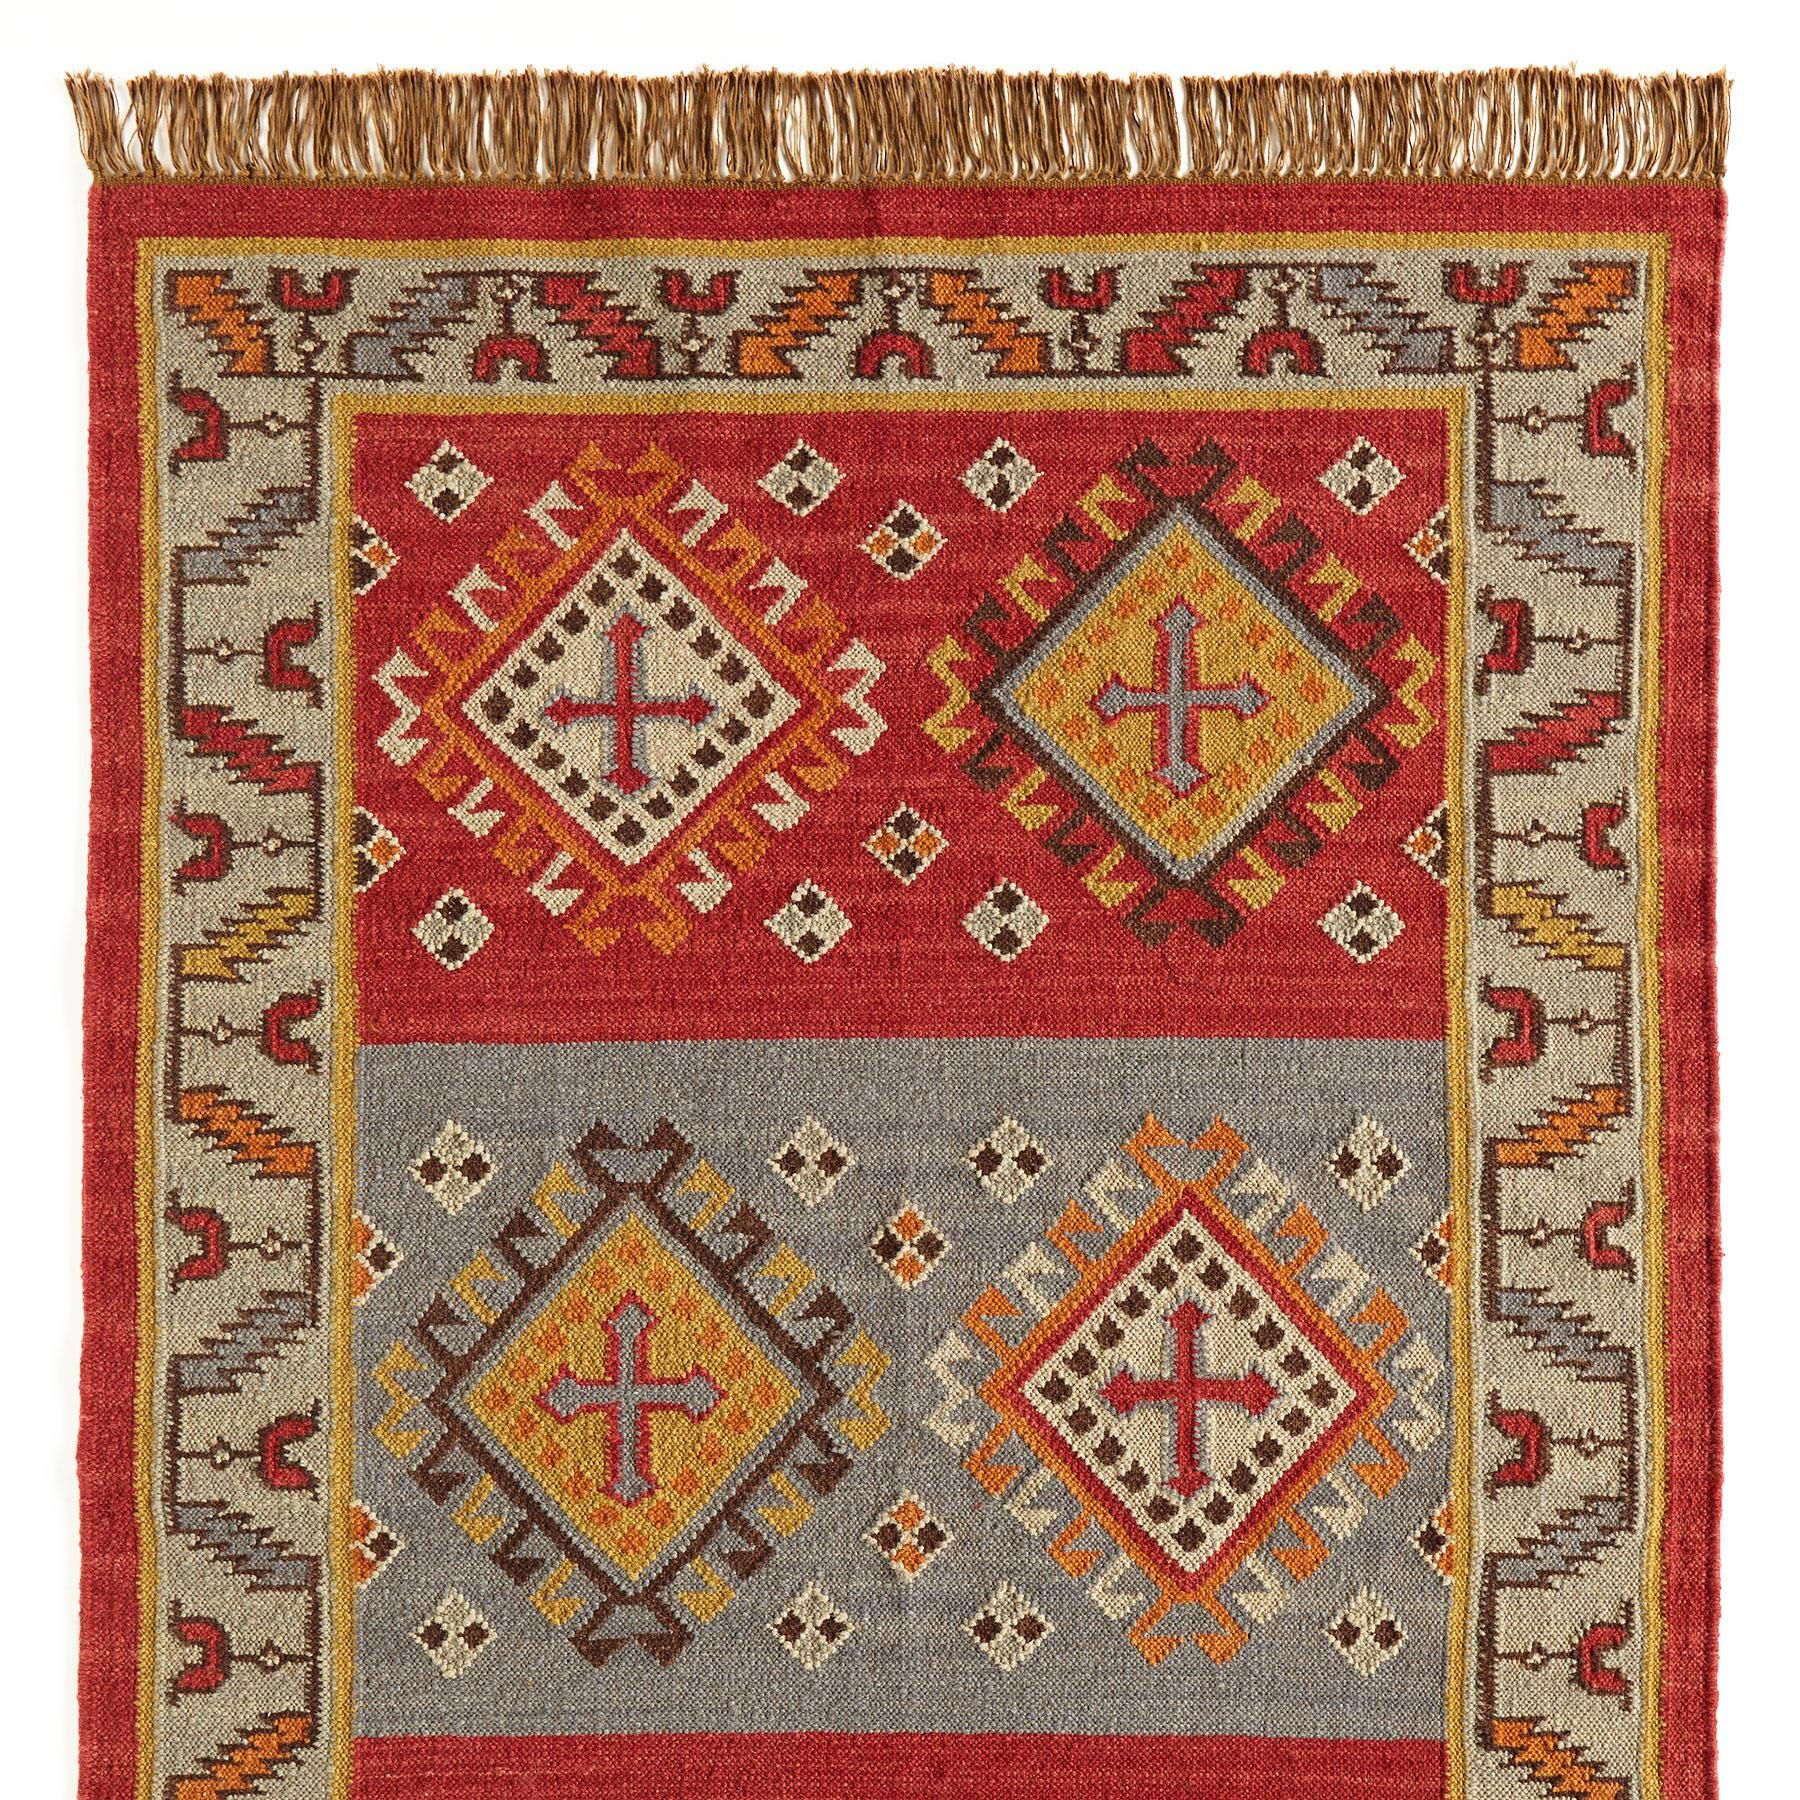 Heraldic Dhurrie Rug Picked From Sundance Stylized Crosses Give Our Handwoven Flatweave Dhurrie Rug A Medieval Ai Dhurrie Rugs Handcrafted Rugs Flat Woven Rug